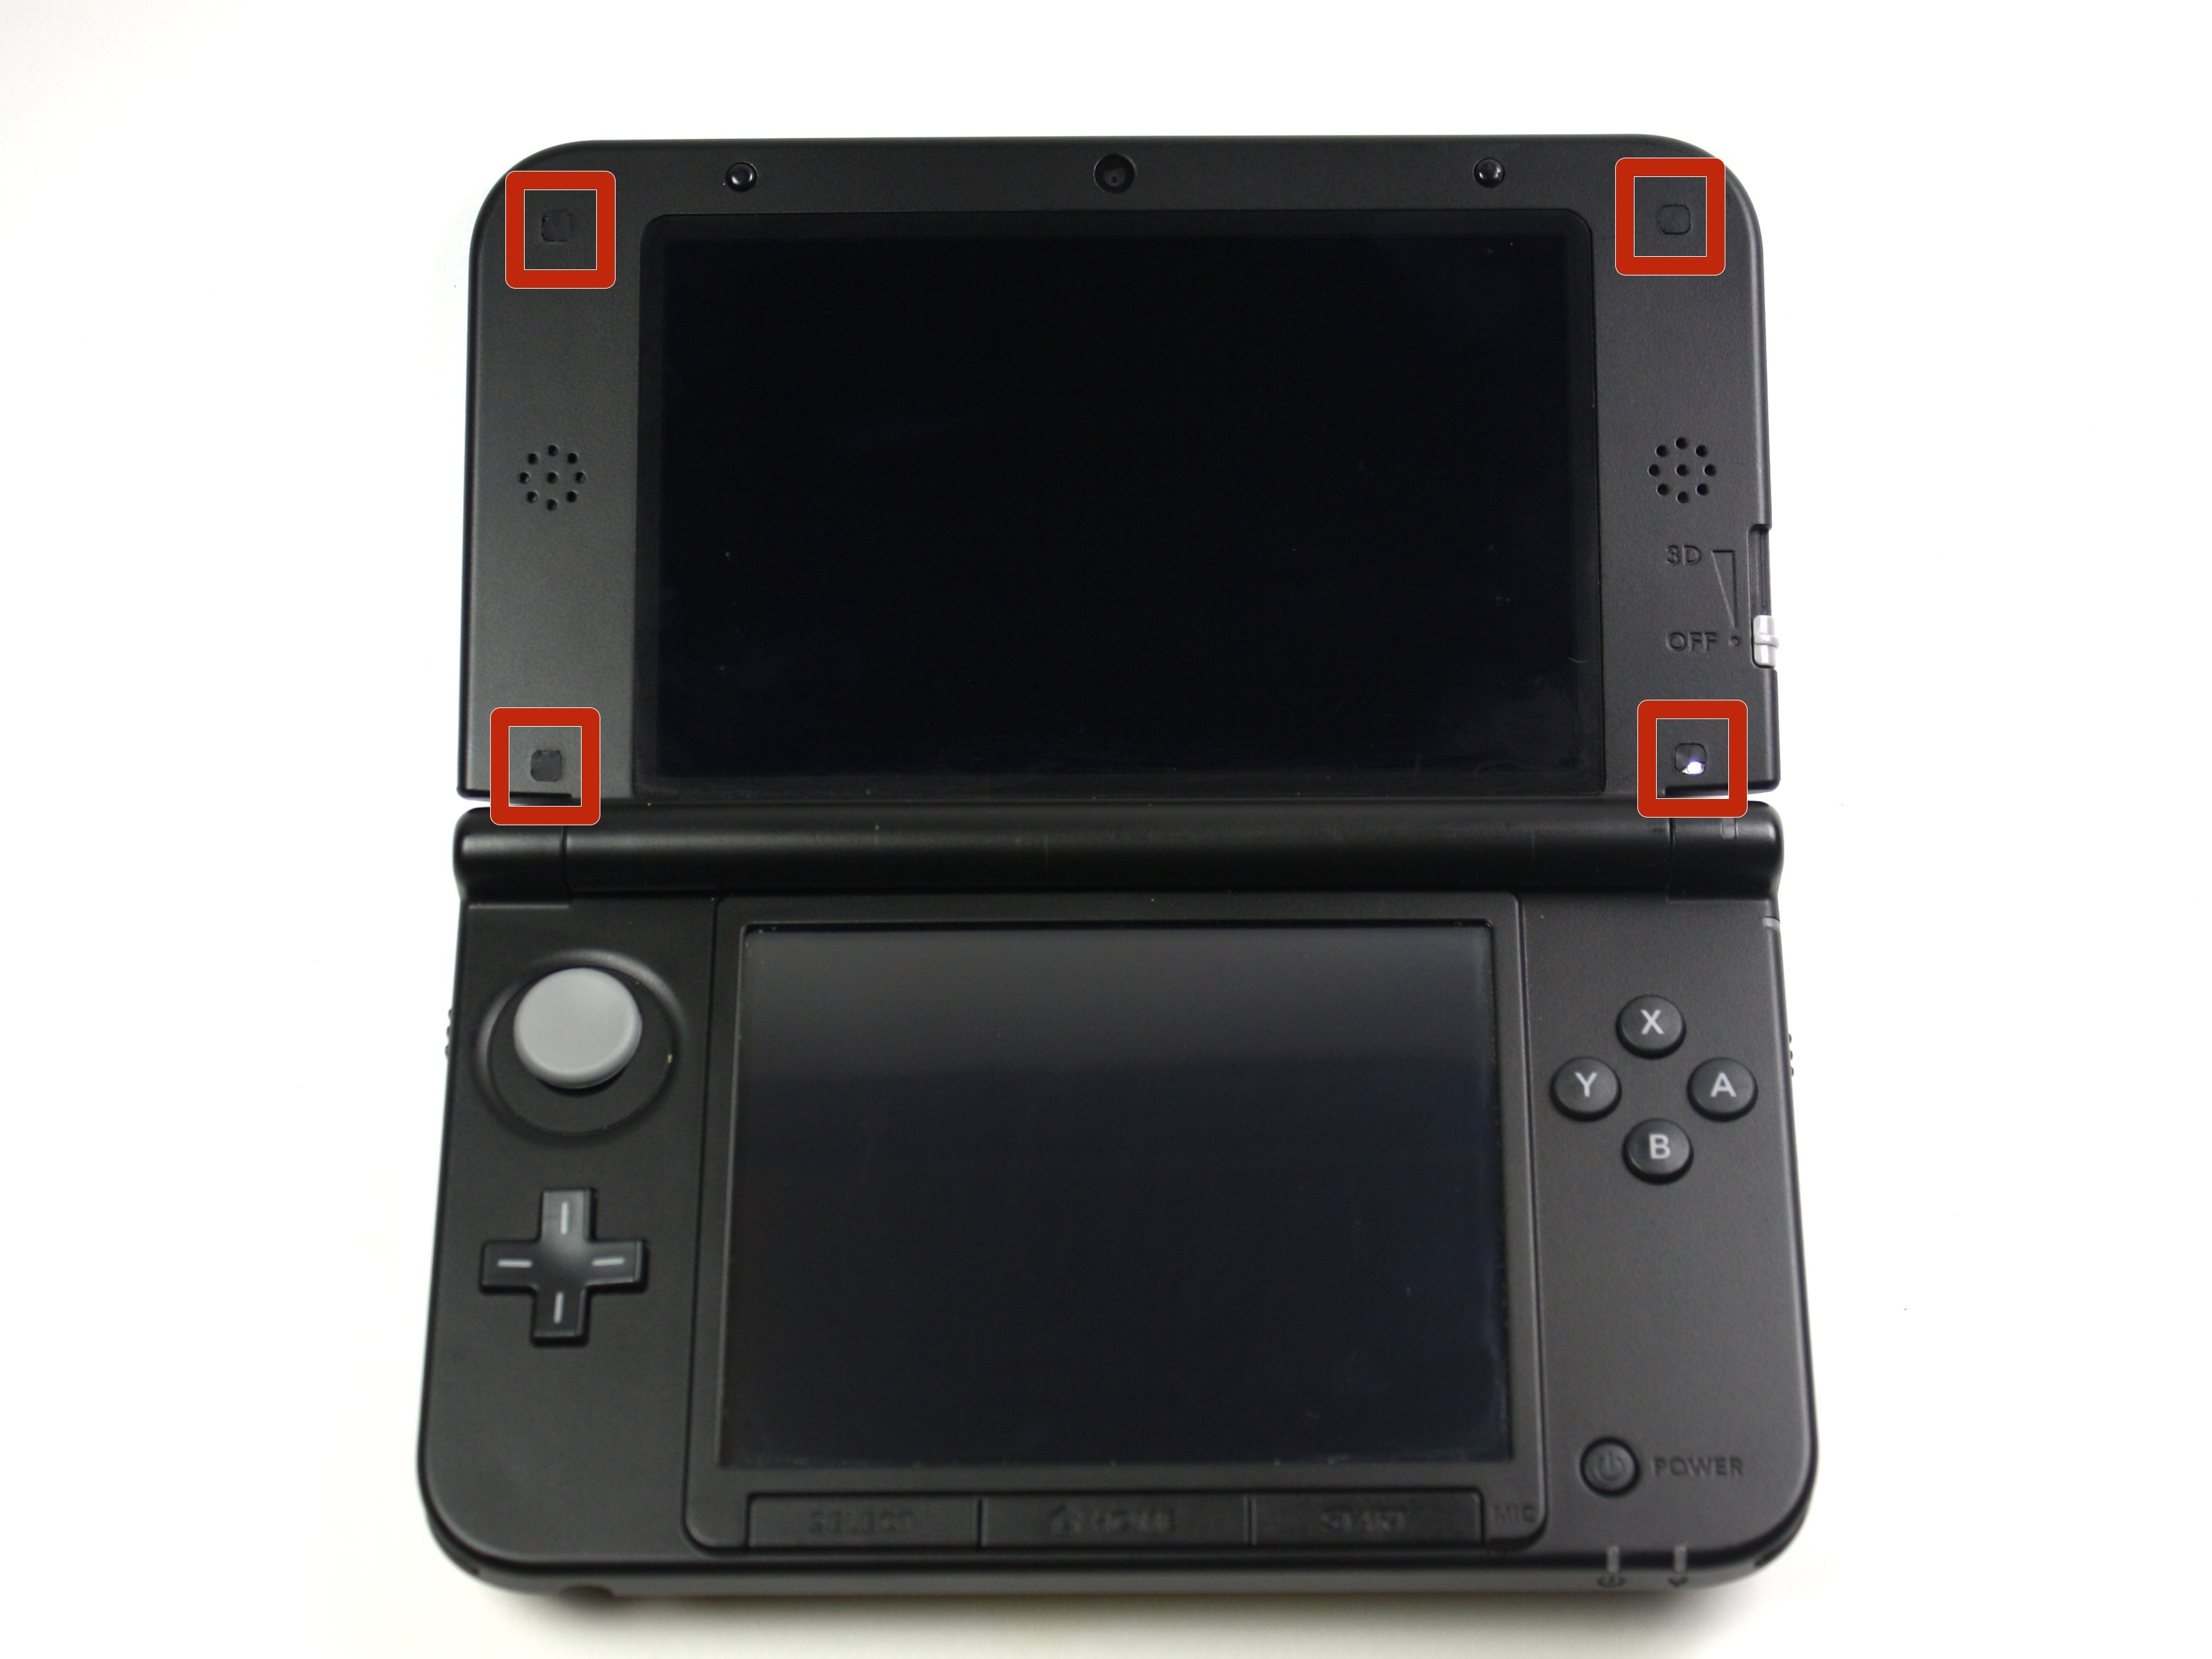 nintendo 3ds xl upper lcd display replacement ifixit repair guide rh ifixit com